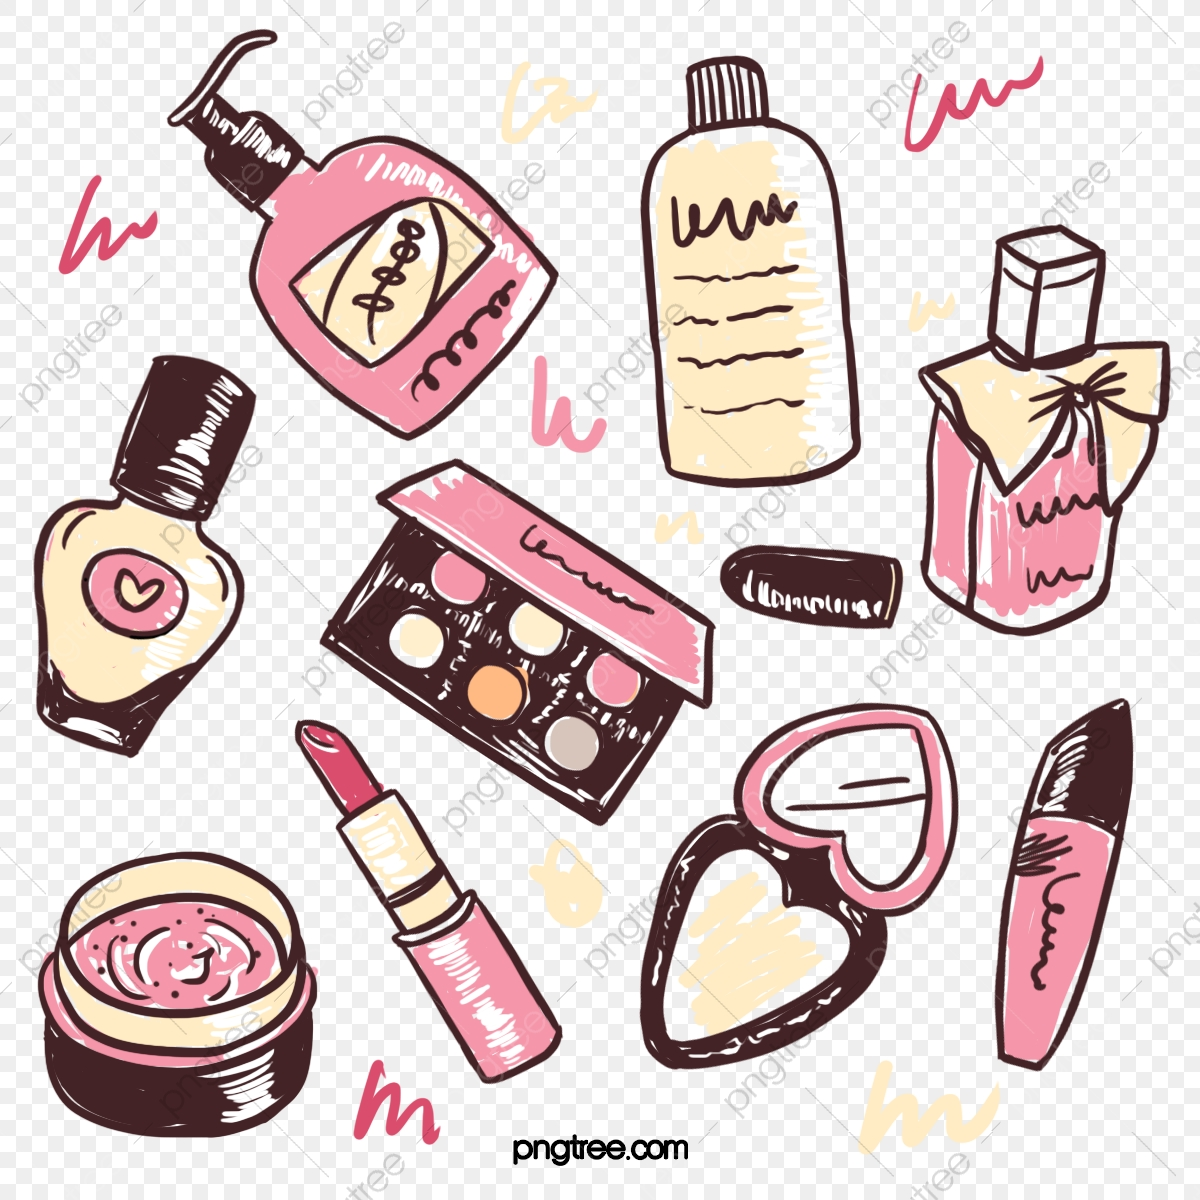 Cartoon Thick Line Hand Drawn Style Skin Care Beauty Set Illustration Perfume Makeup Mirror Element Cosmetics Cosmetic Eye Shadow Box Png Transparent Clipart Image And Psd File For Free Download